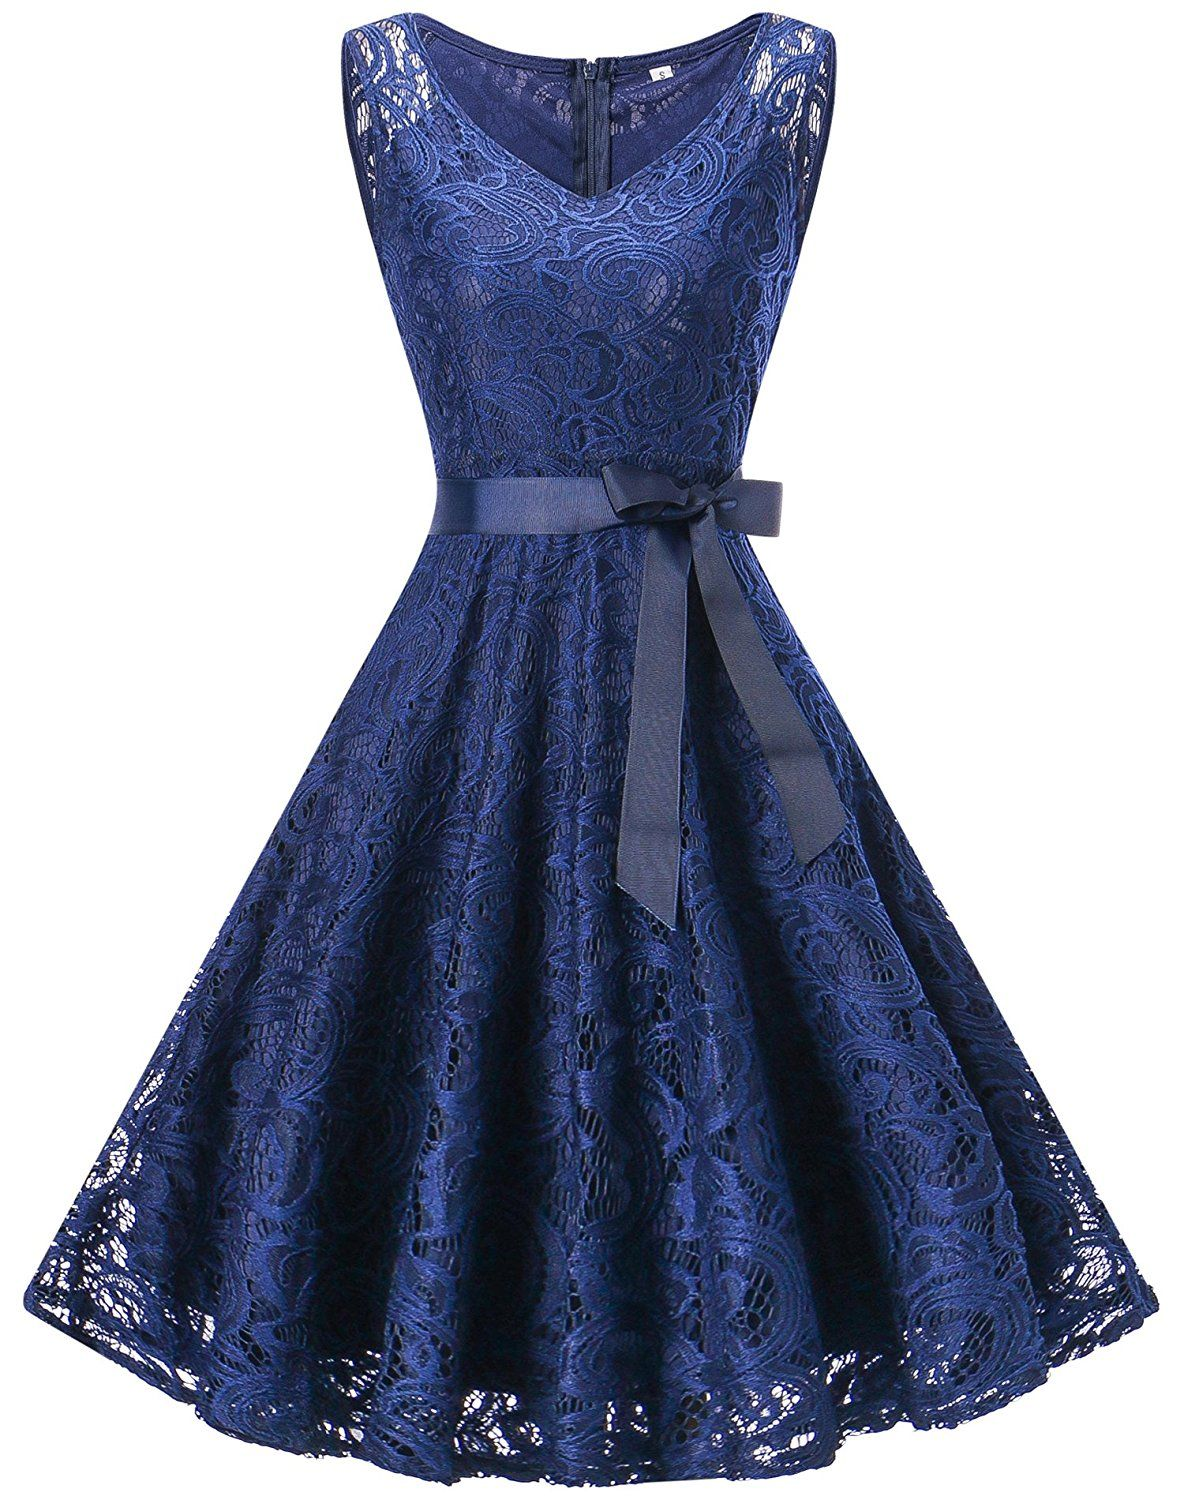 Womenus sleeveless floral lace cocktail dress formal party swing